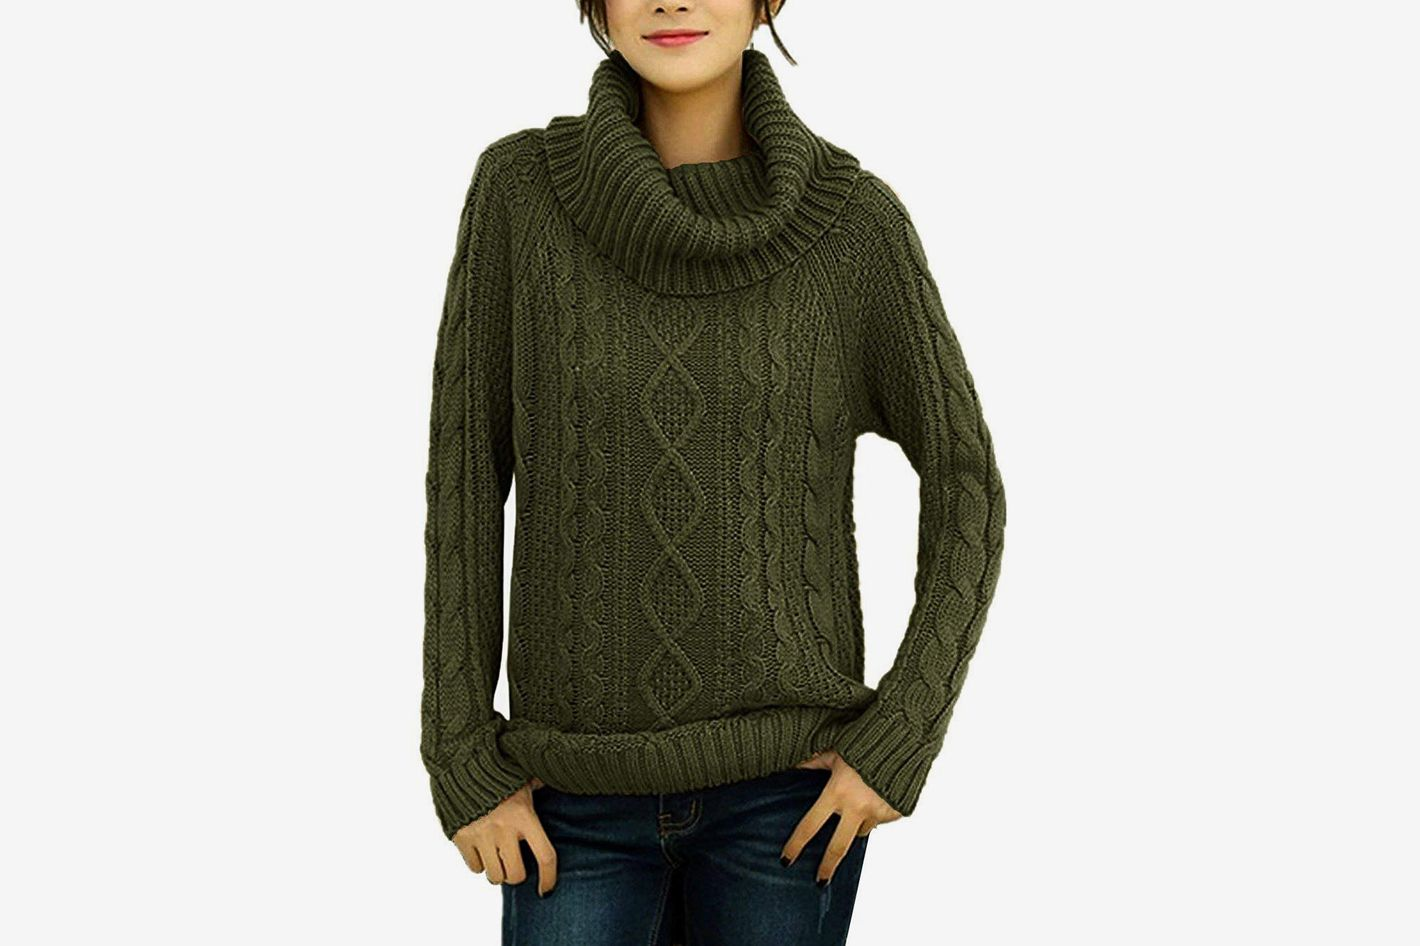 v28 Women s Korean Design Turtle Cowl Neck Ribbed Cable Knit Long Sweater  Jumper f4bb414a9